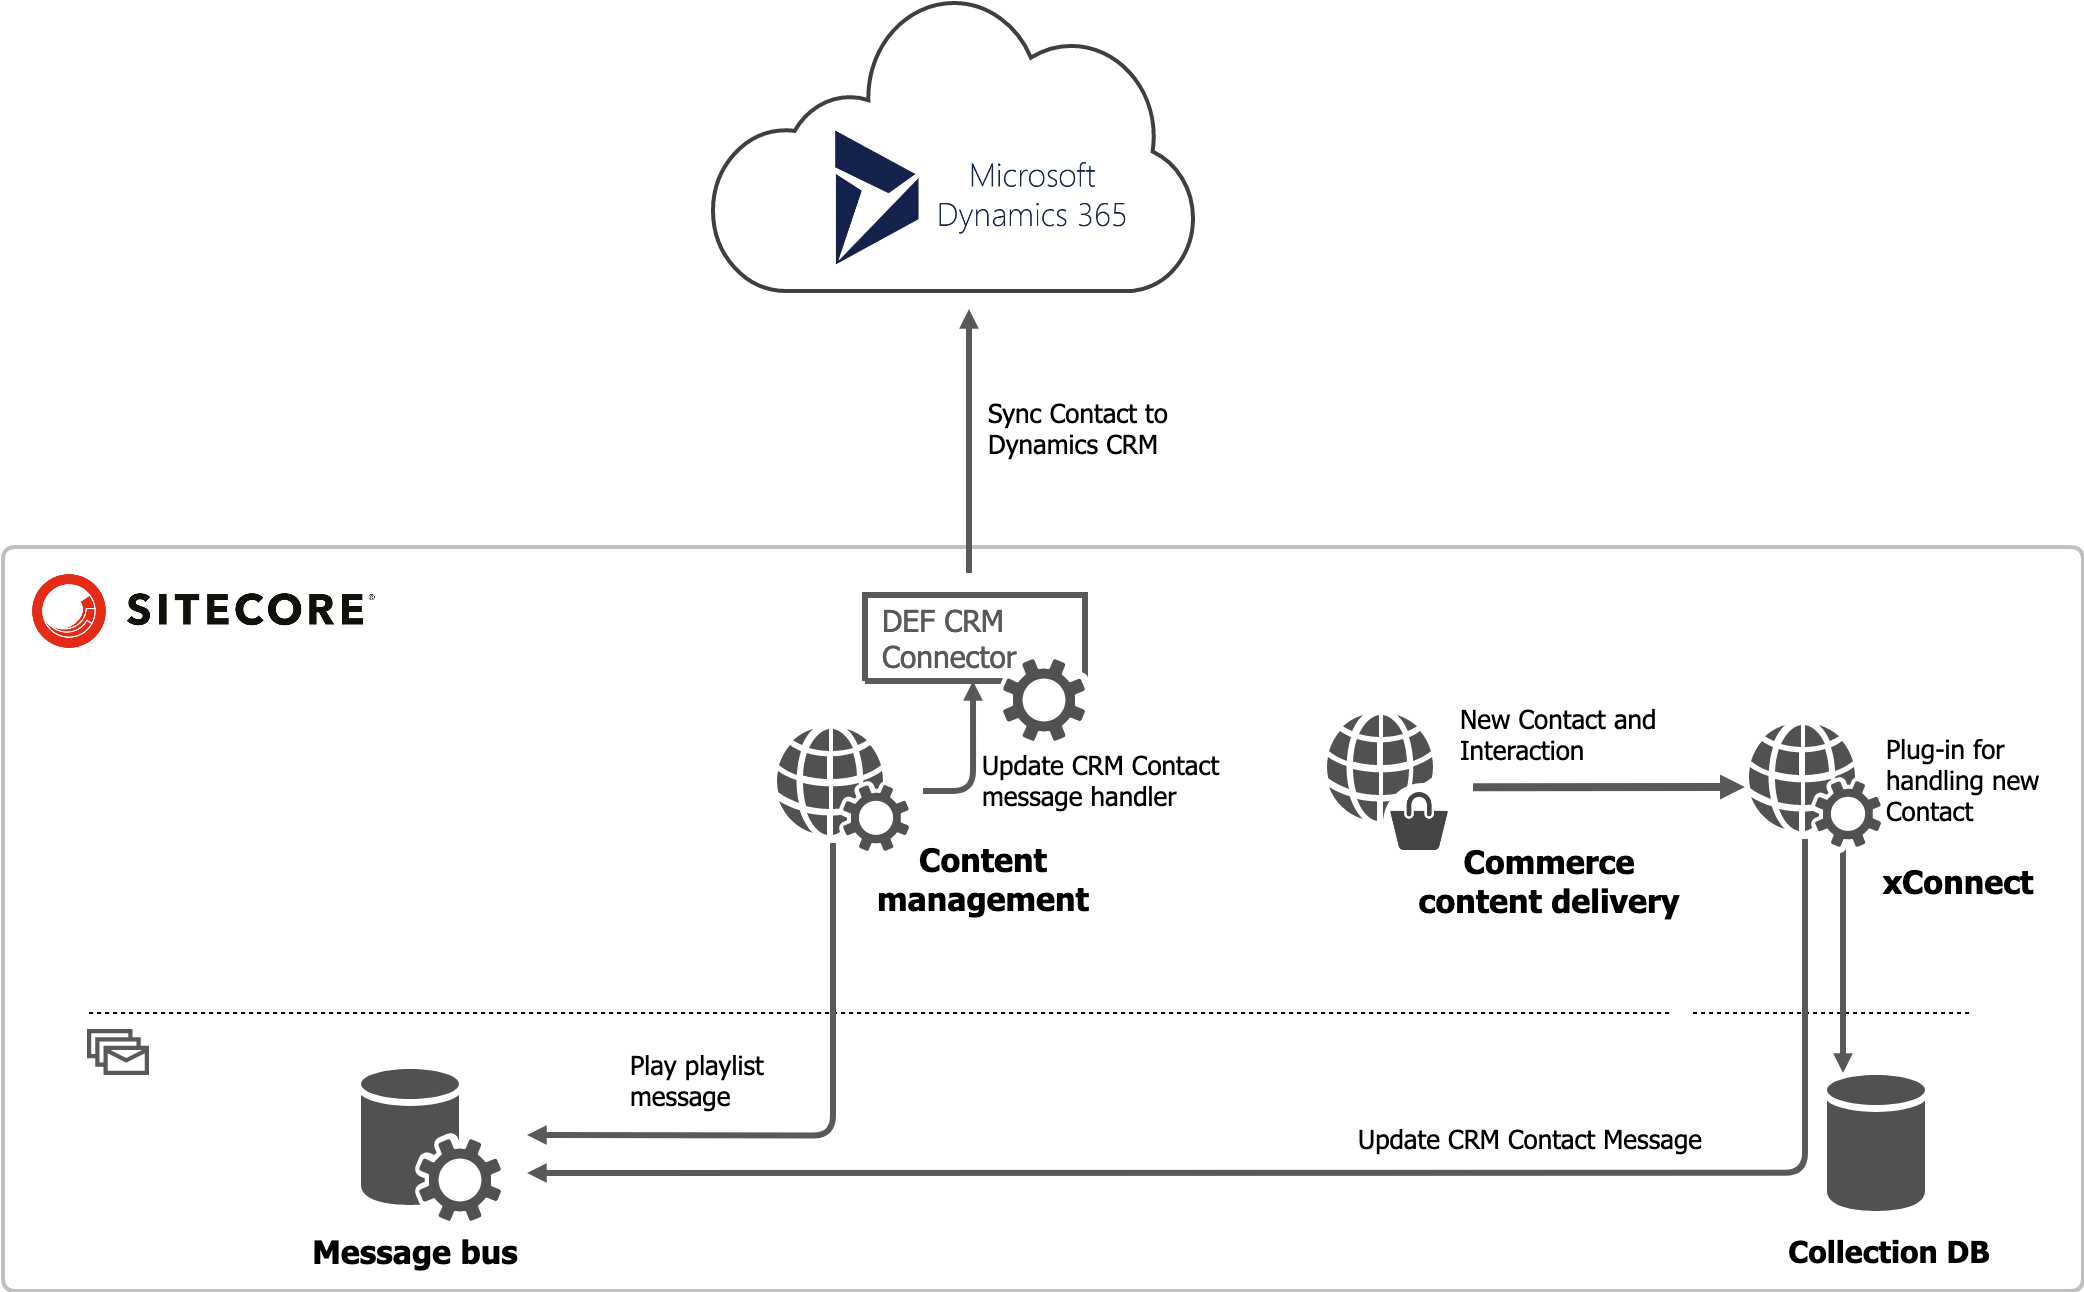 Communication between xConnect and Dynamics CRM via DEF